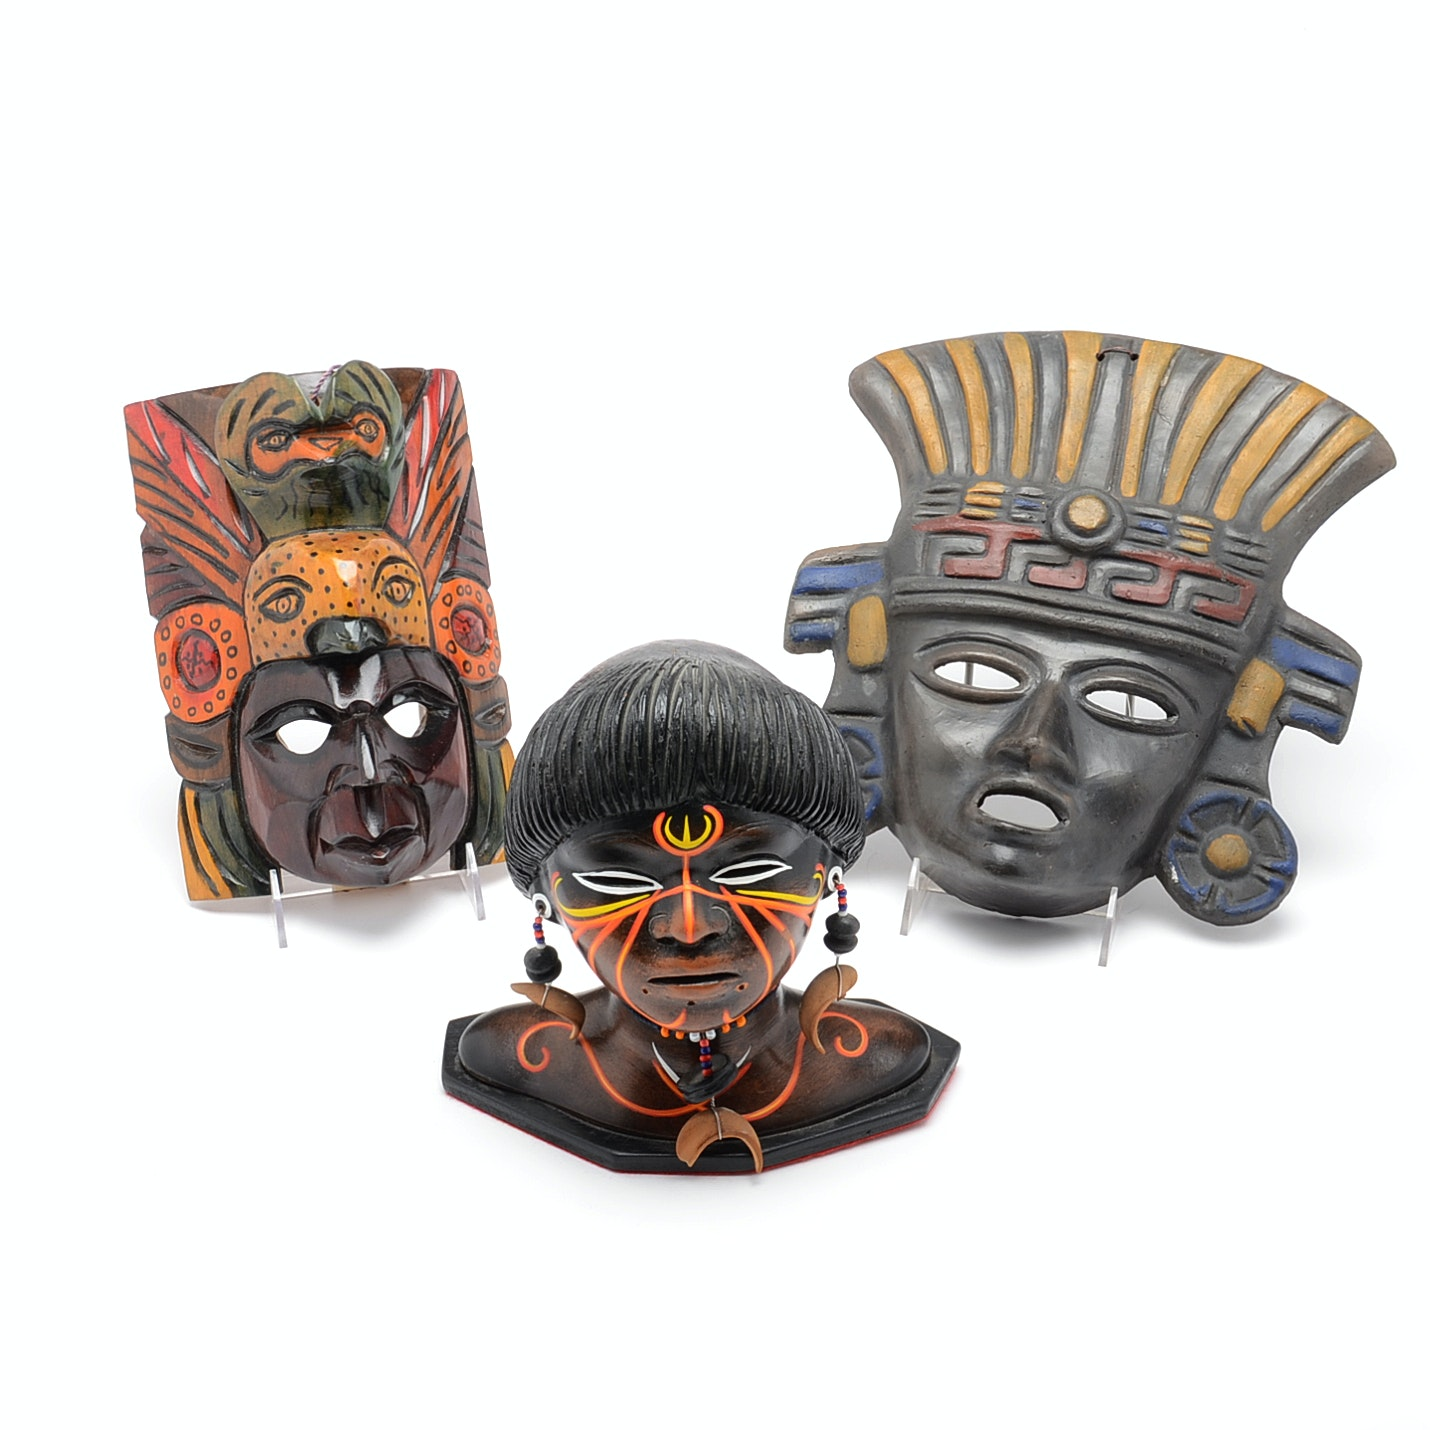 Tribal Masks and Ceramic Bust